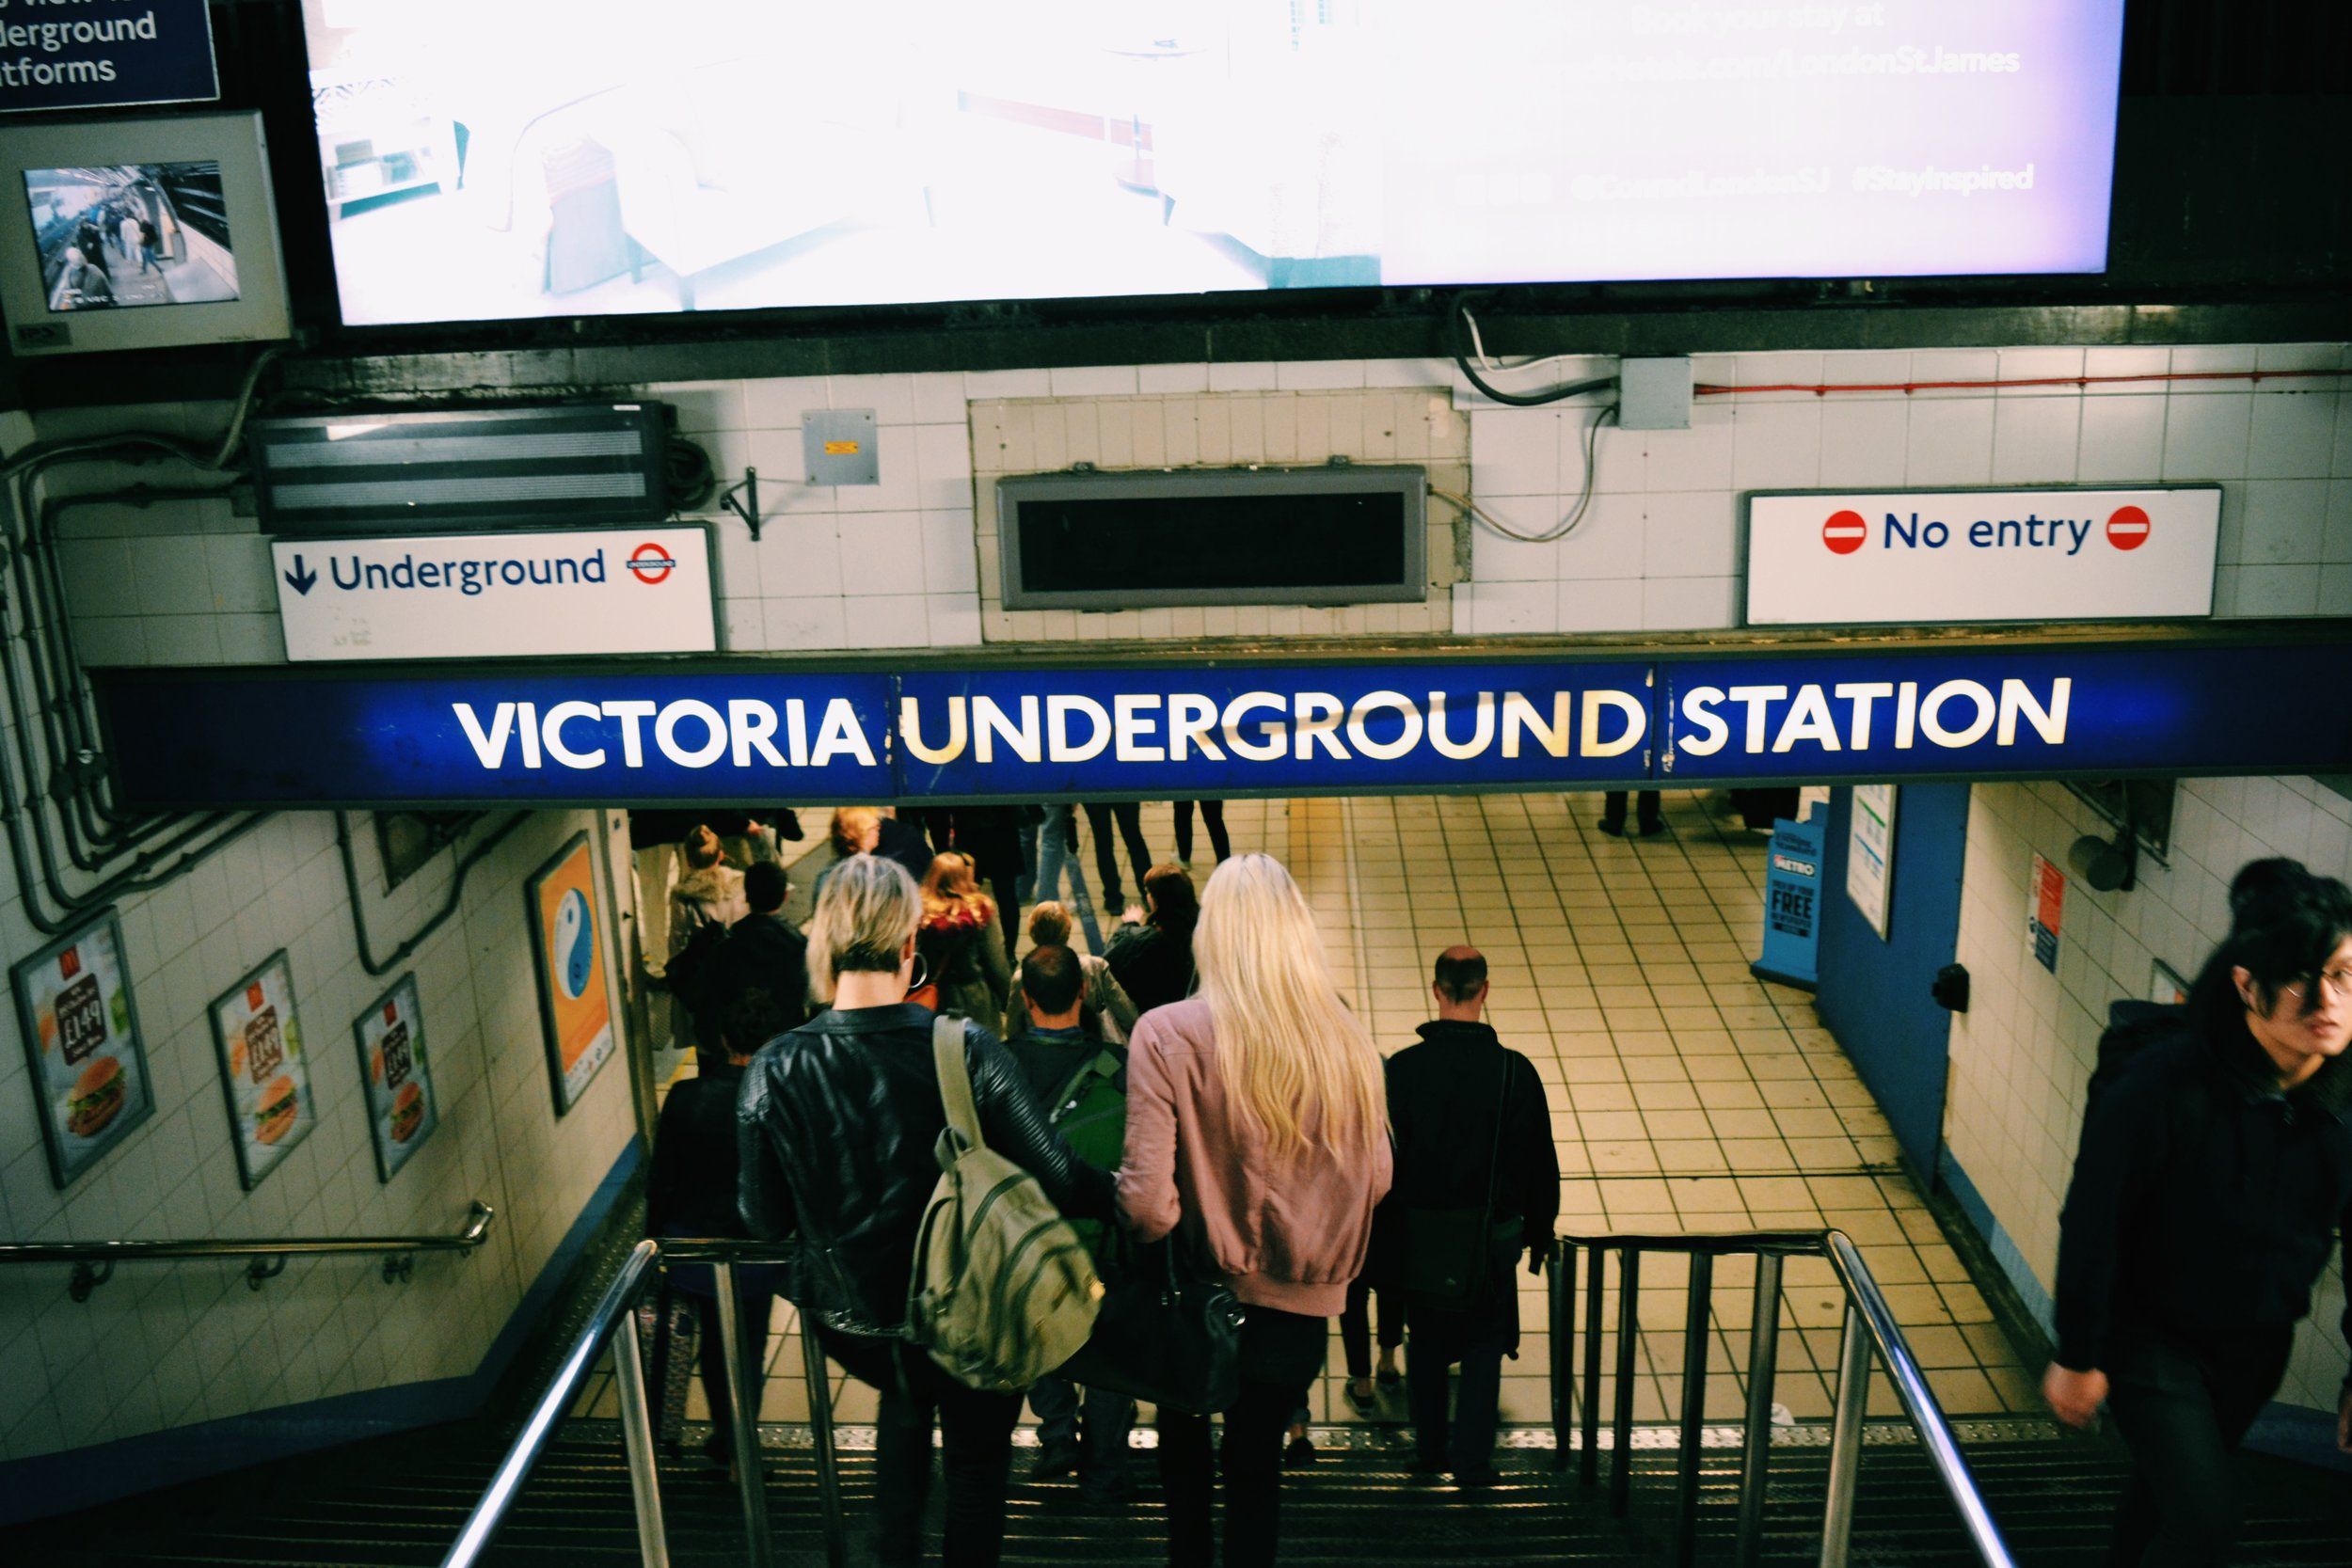 victoria-underground-entrance-london